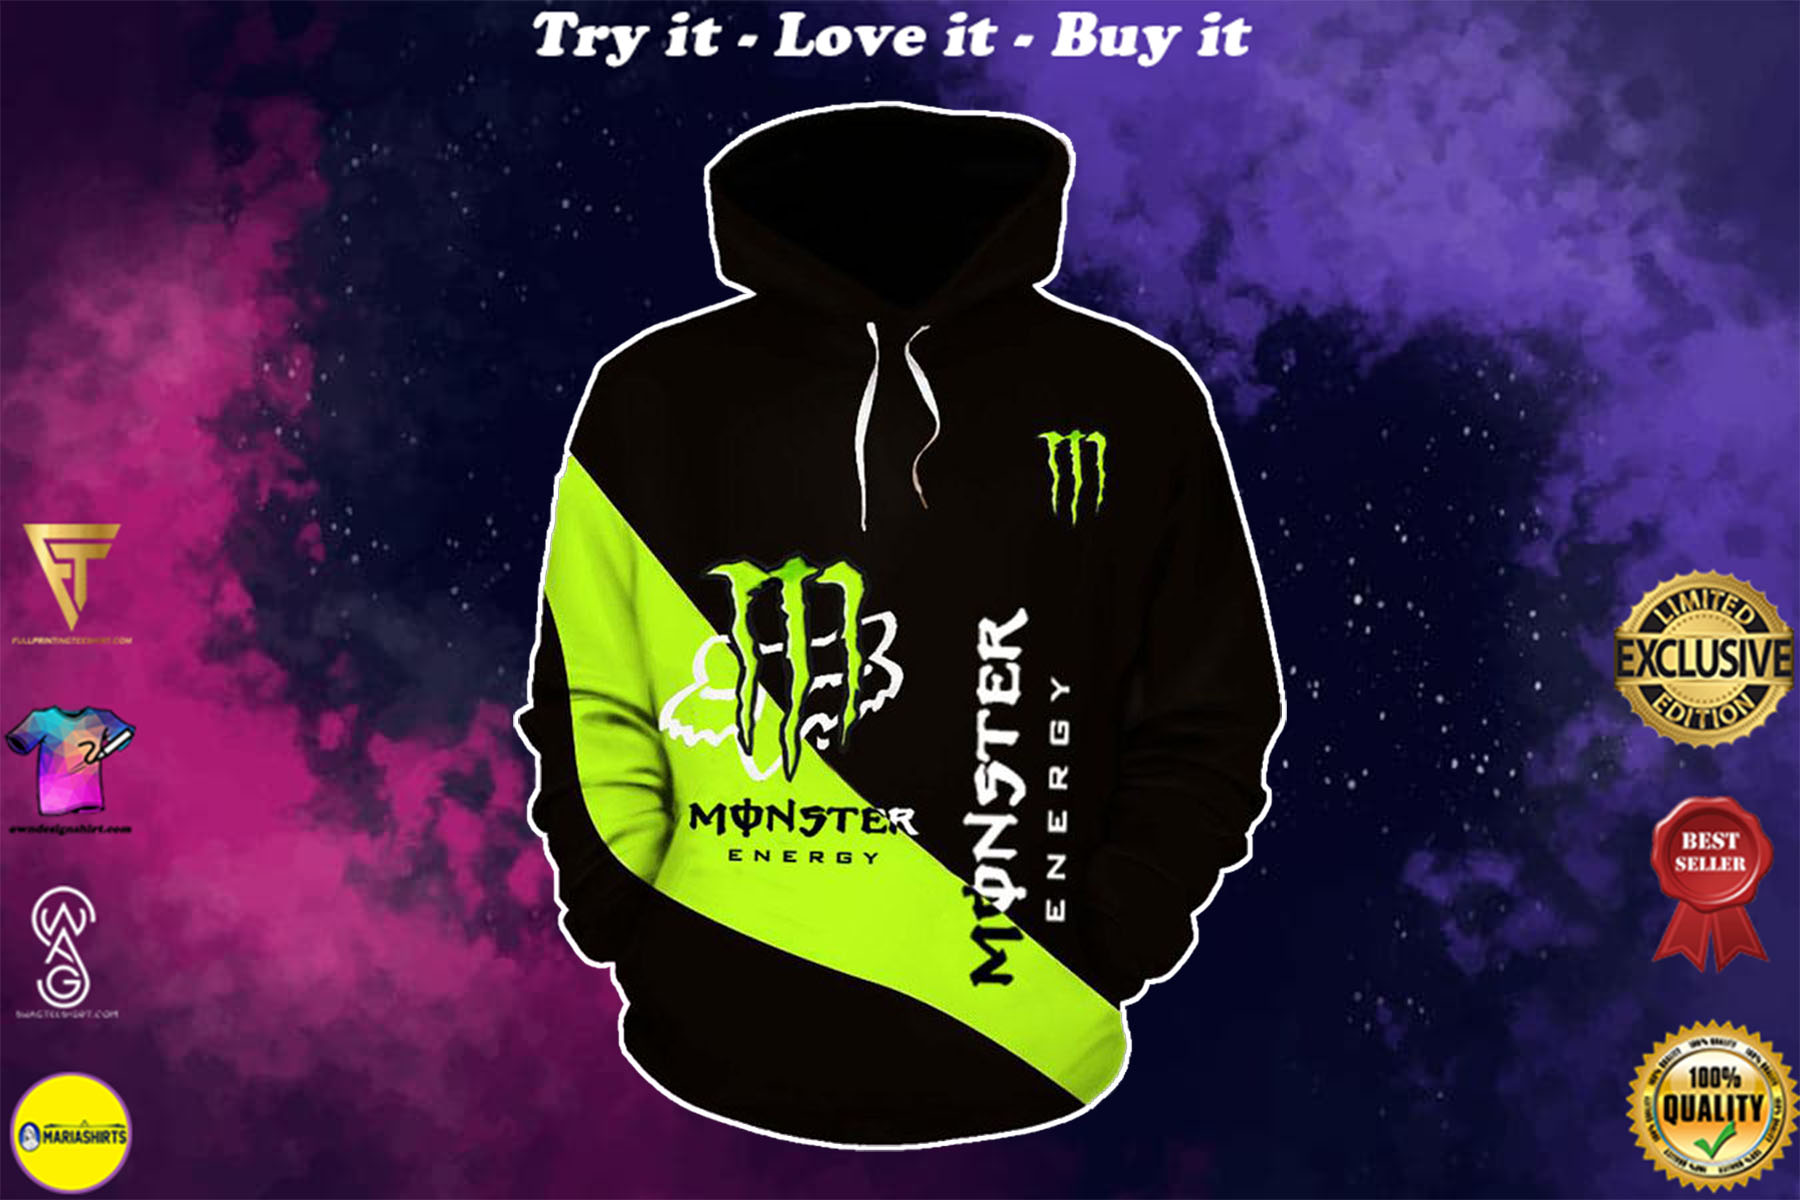 [special edition] monster energy and fox racing mountain bike full printing shirt - maria